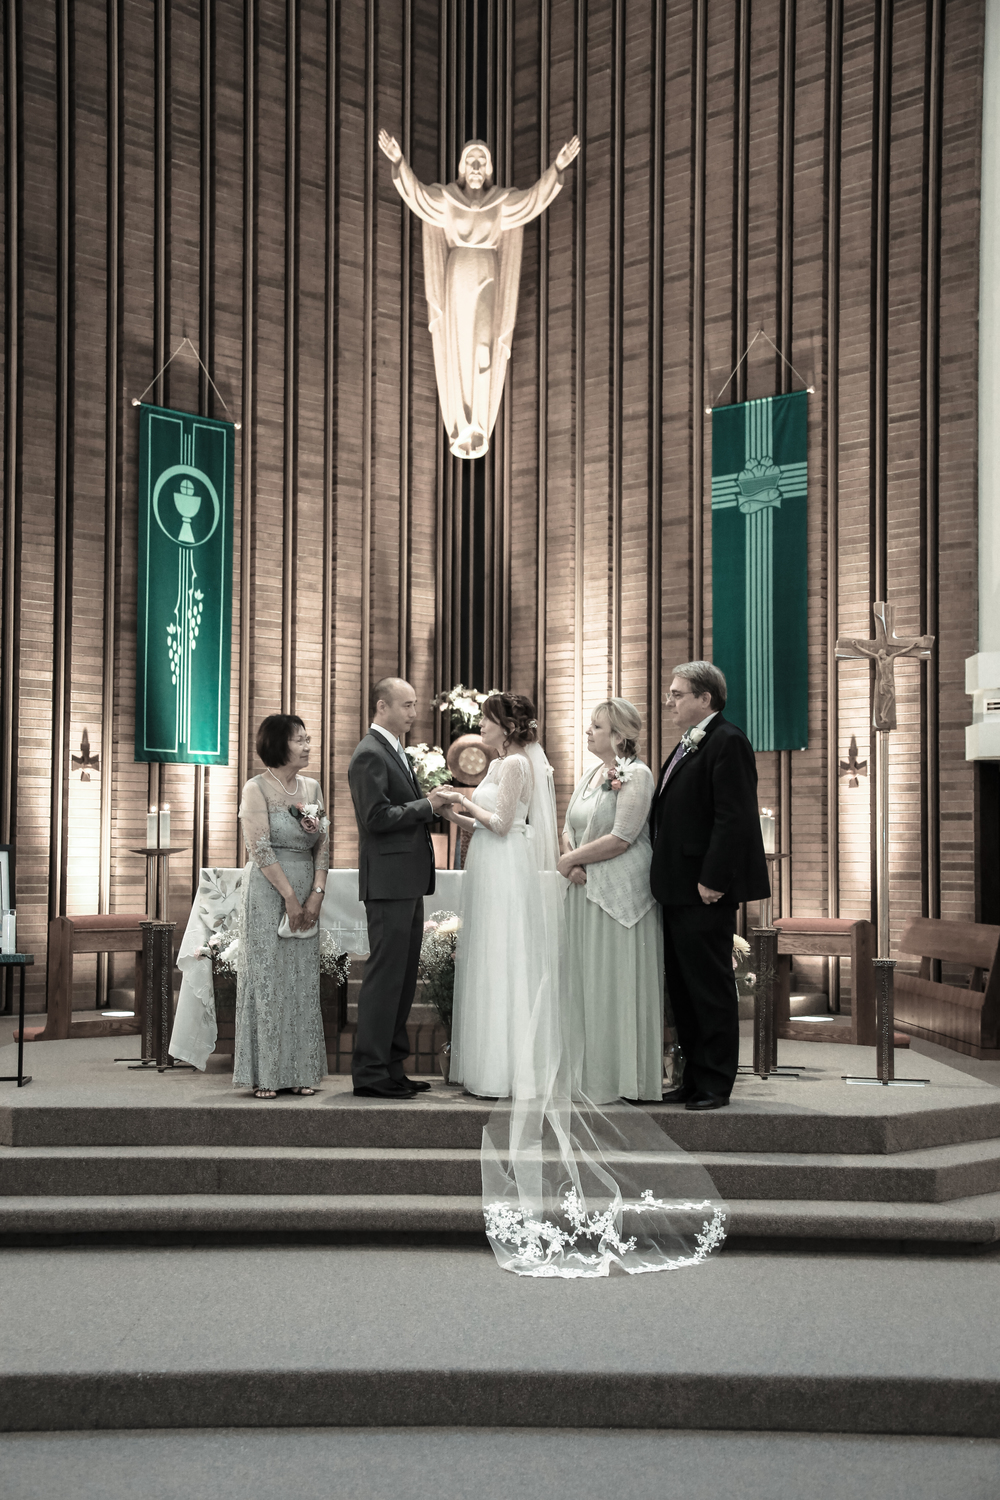 Salt Lake wedding ceremony photography